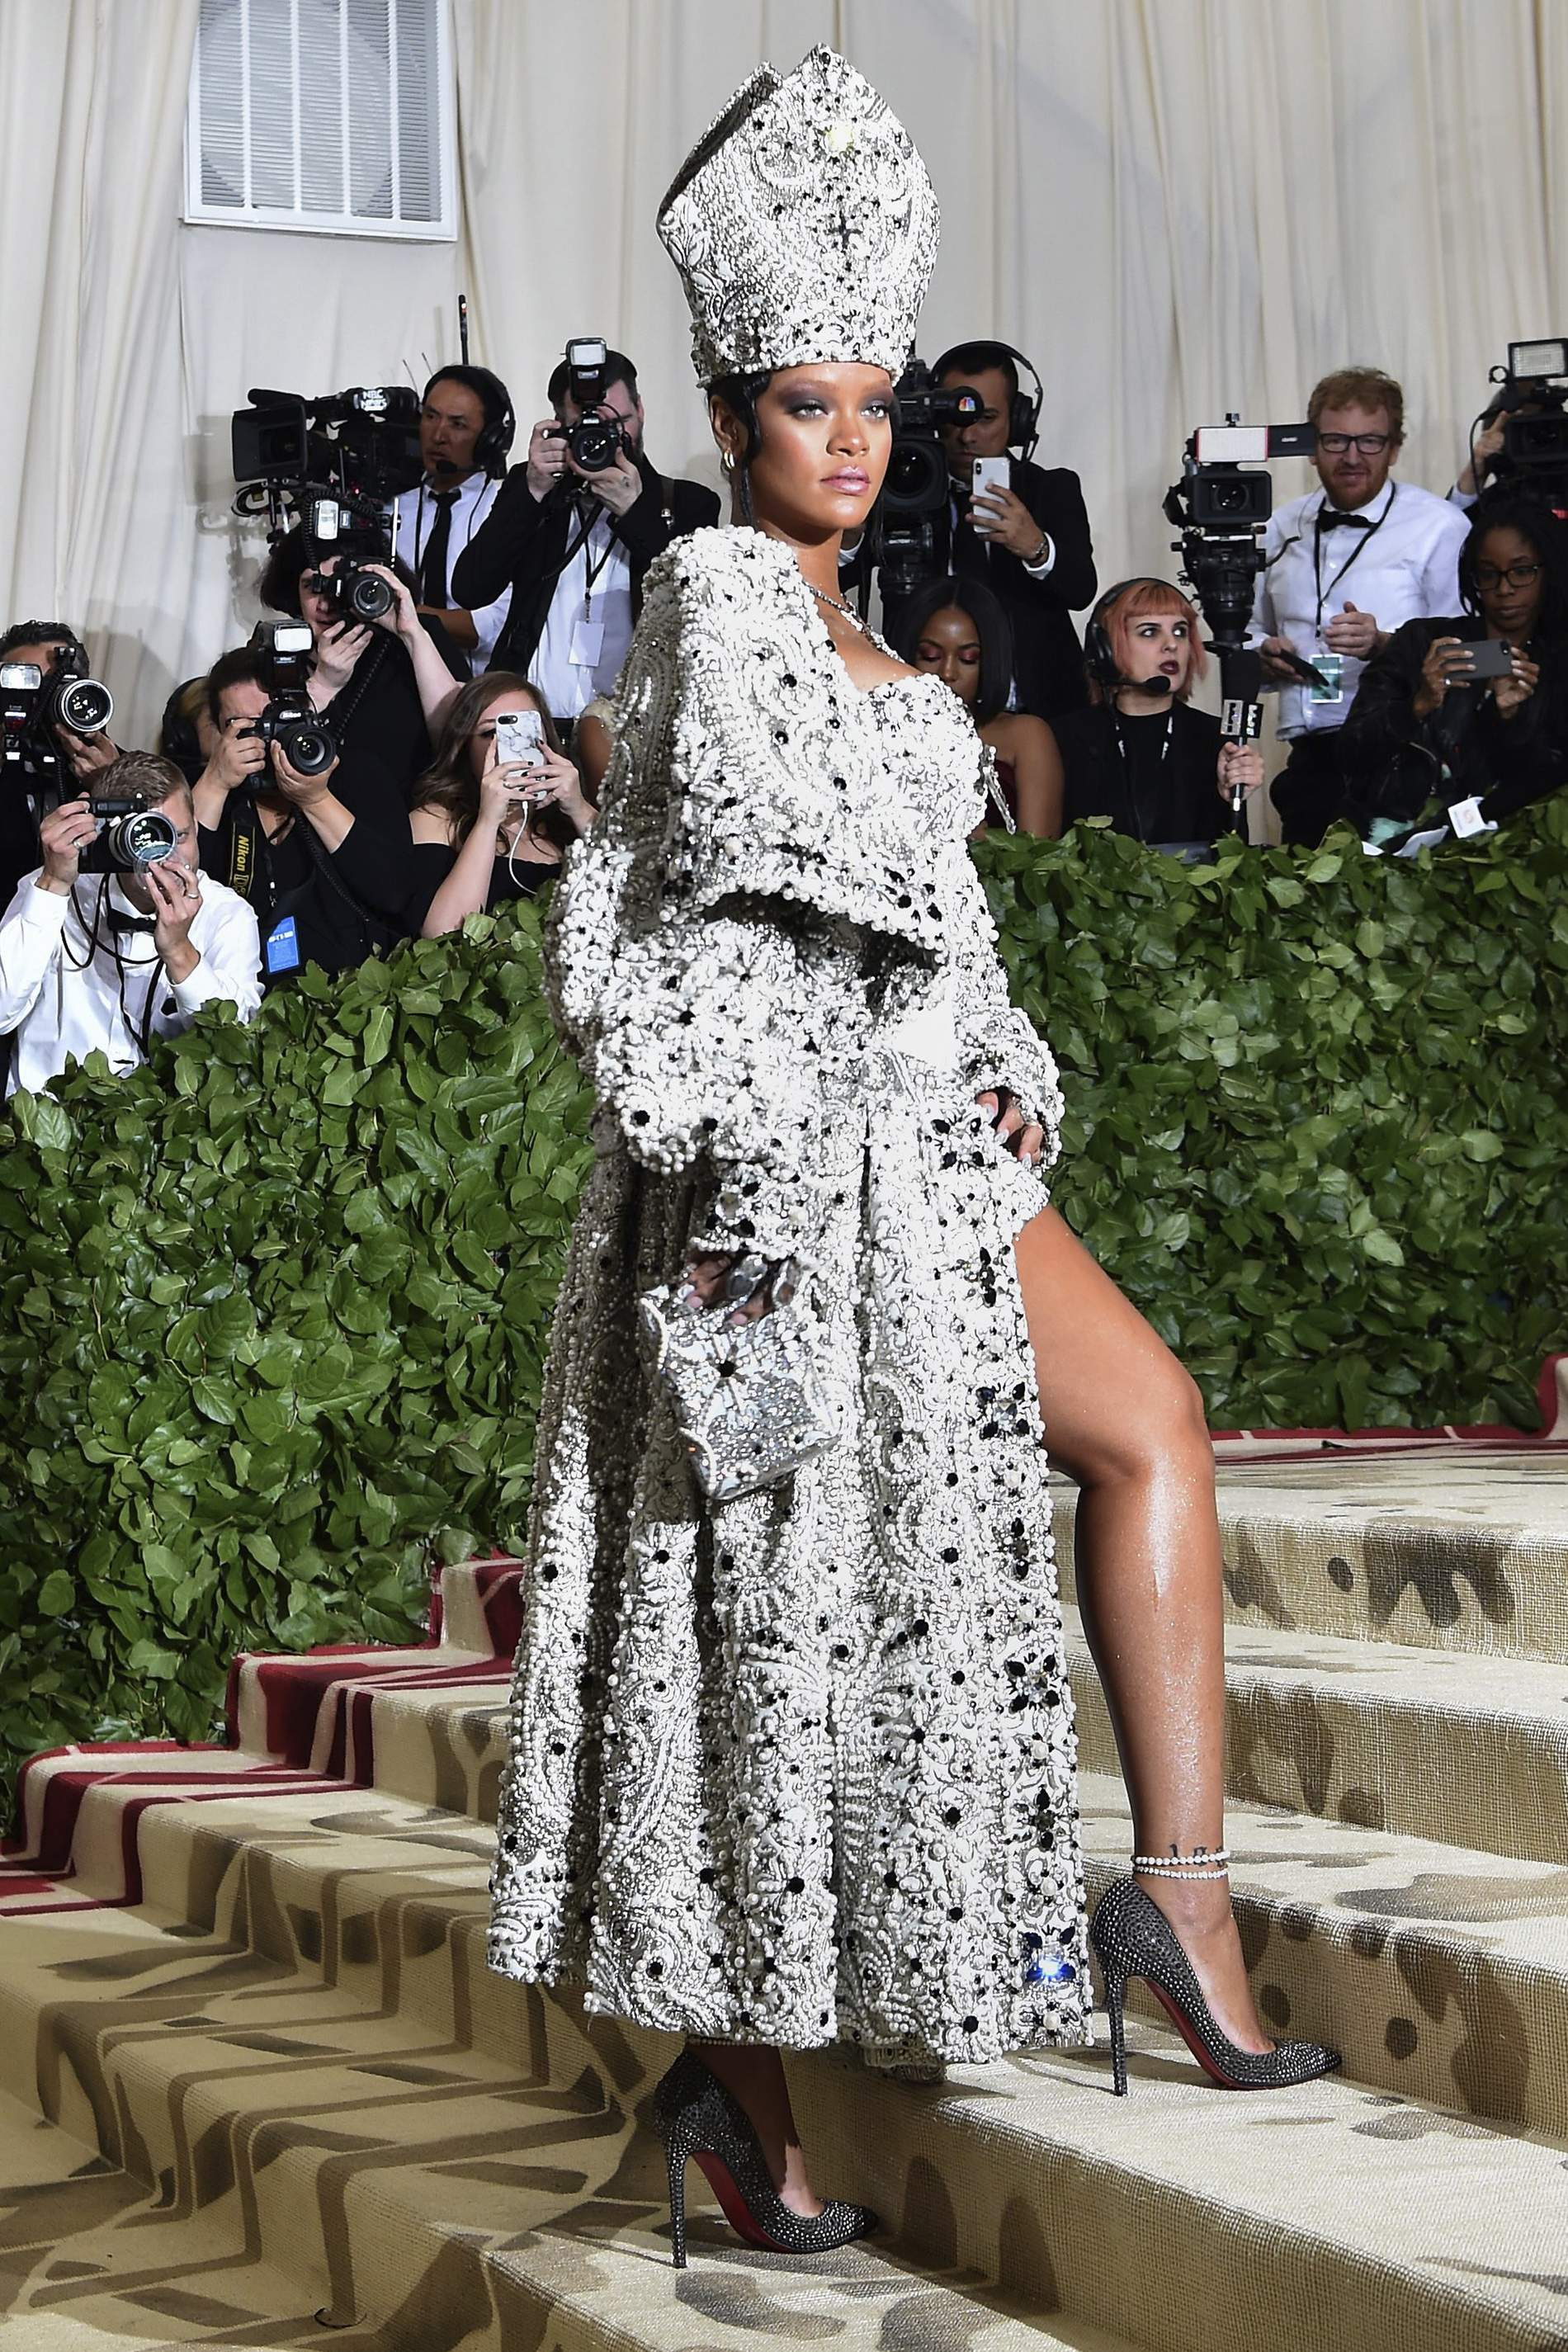 pics Rihanna To Wear Custom Givenchy Couture OnTour